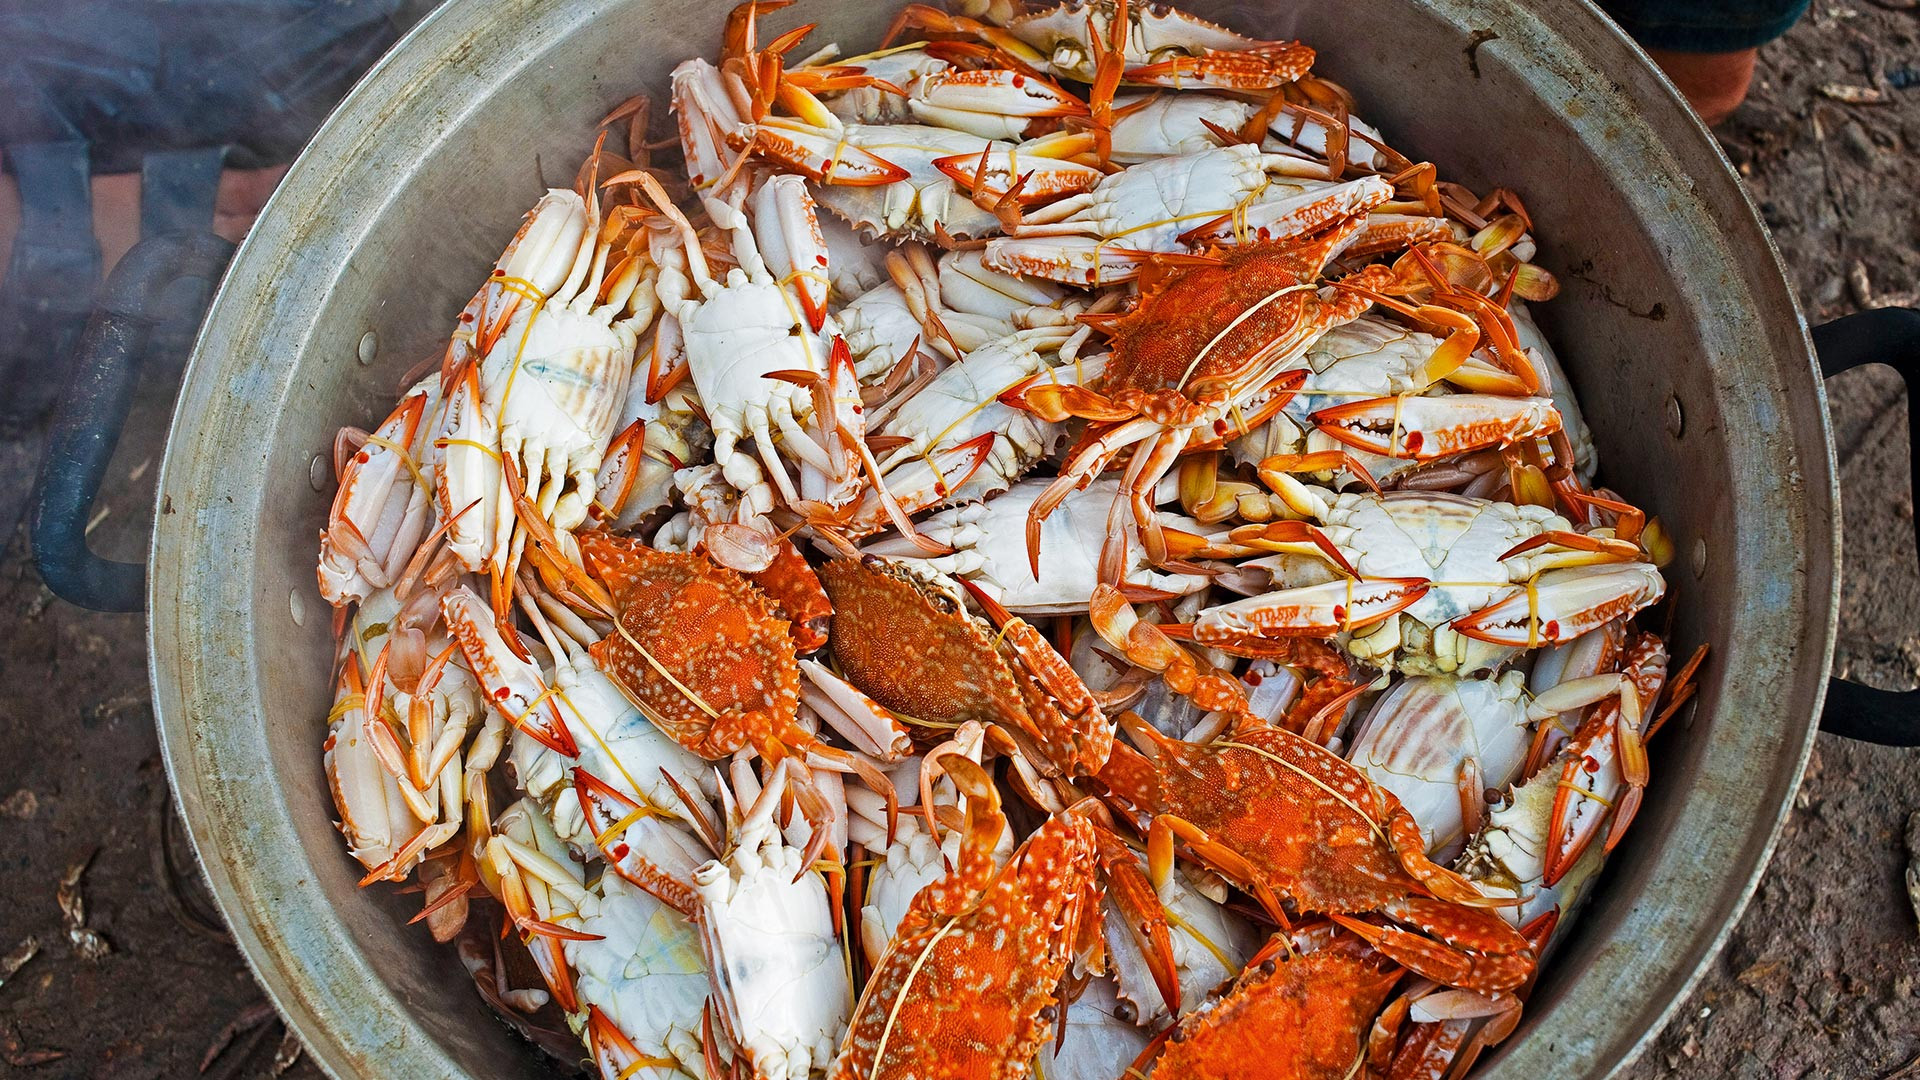 The abundance of superlative crab in Kep has turned the sleepy seaside town into a food destination